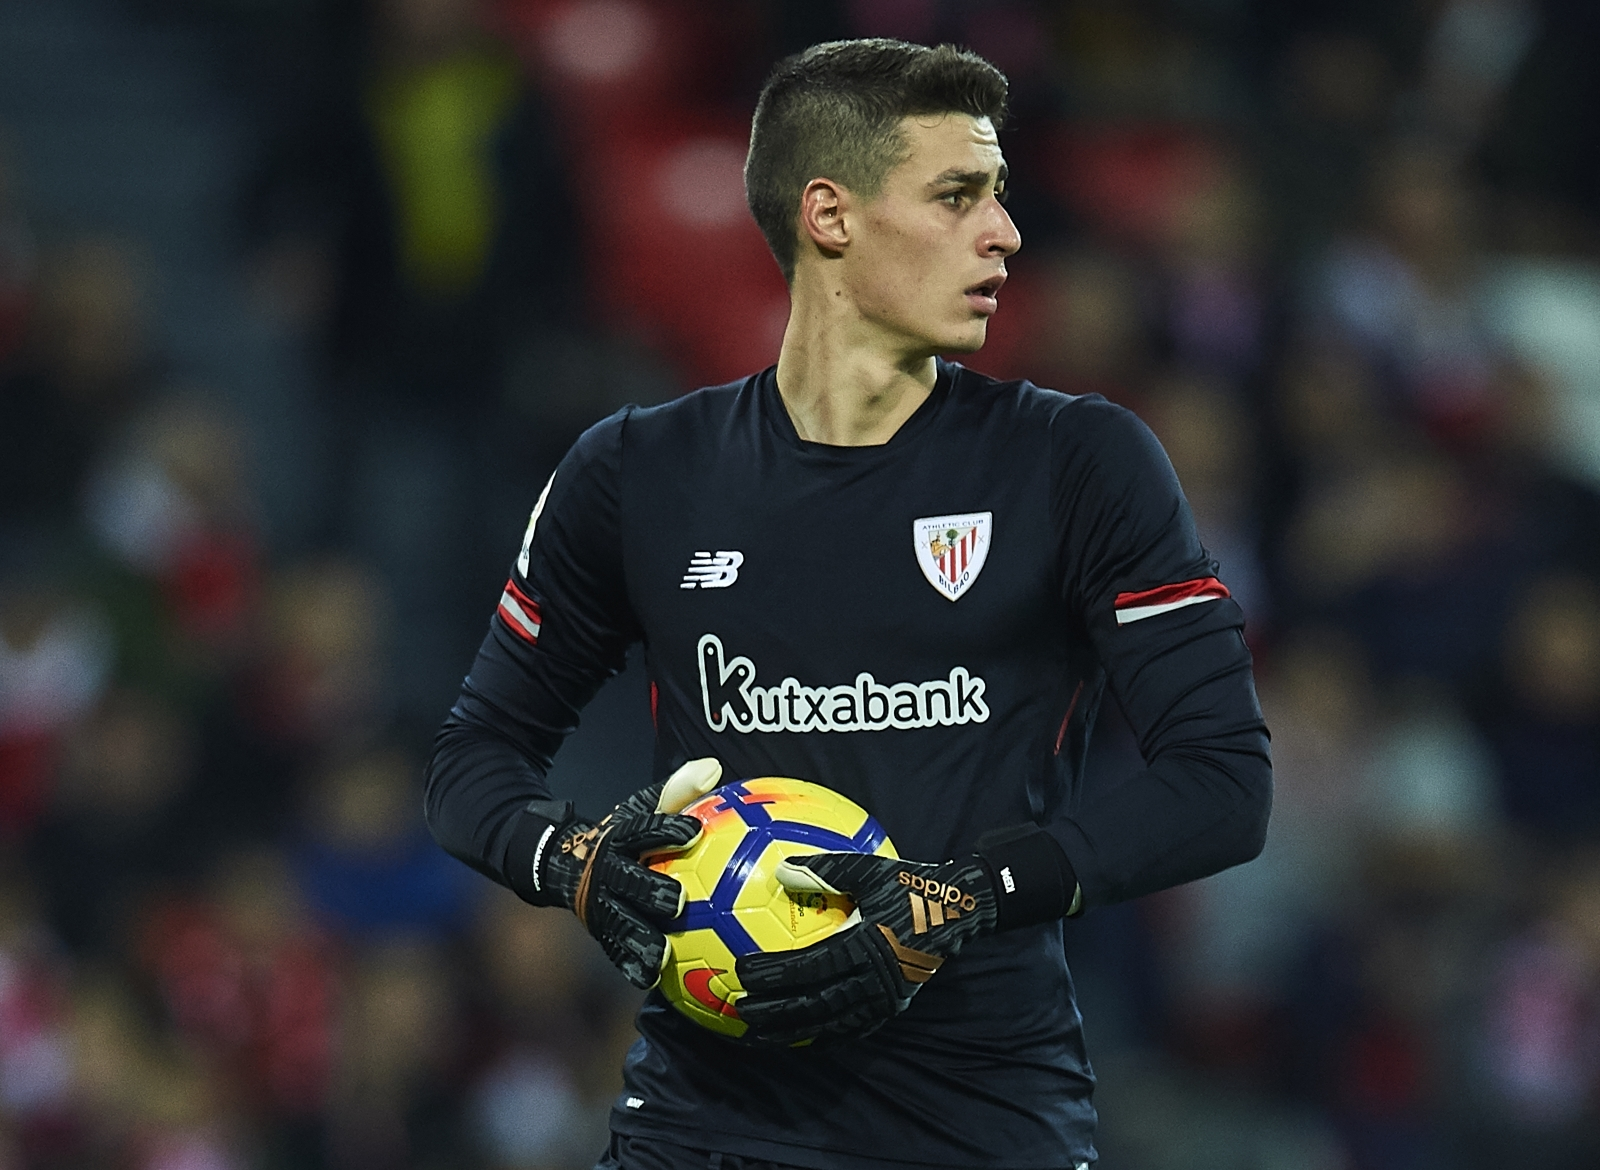 It S Been Real Pubg But I M Ready To Move On: Kepa Arrizabalaga 'ready' To Join Real Madrid From